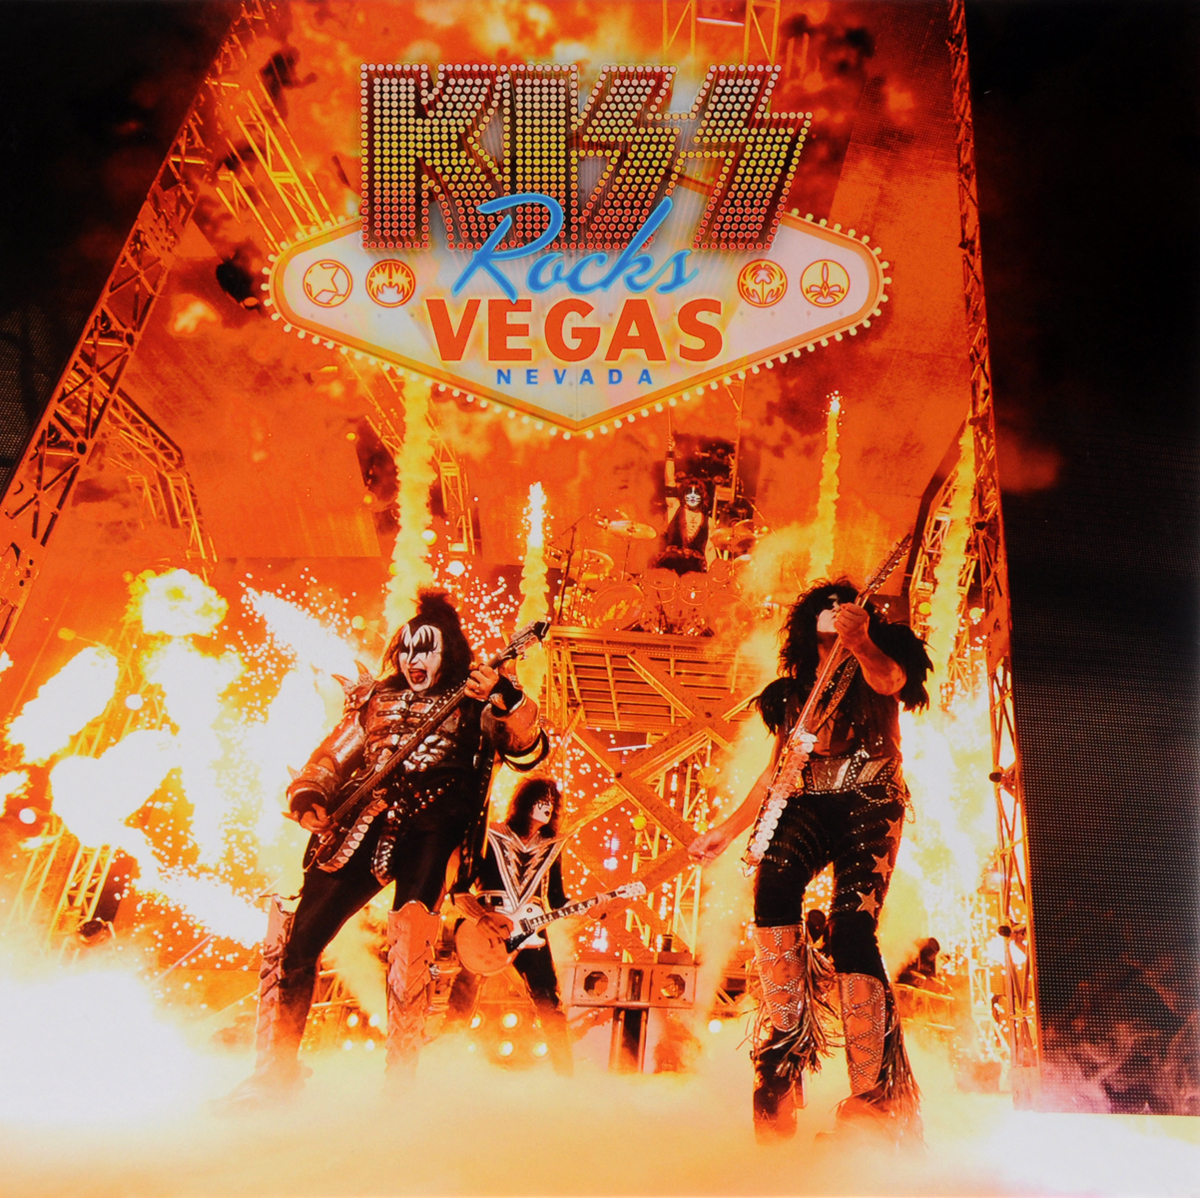 Kiss Kiss. Rocks Vegas (2 CD + DVD + Blu-Ray) касабланка blu ray